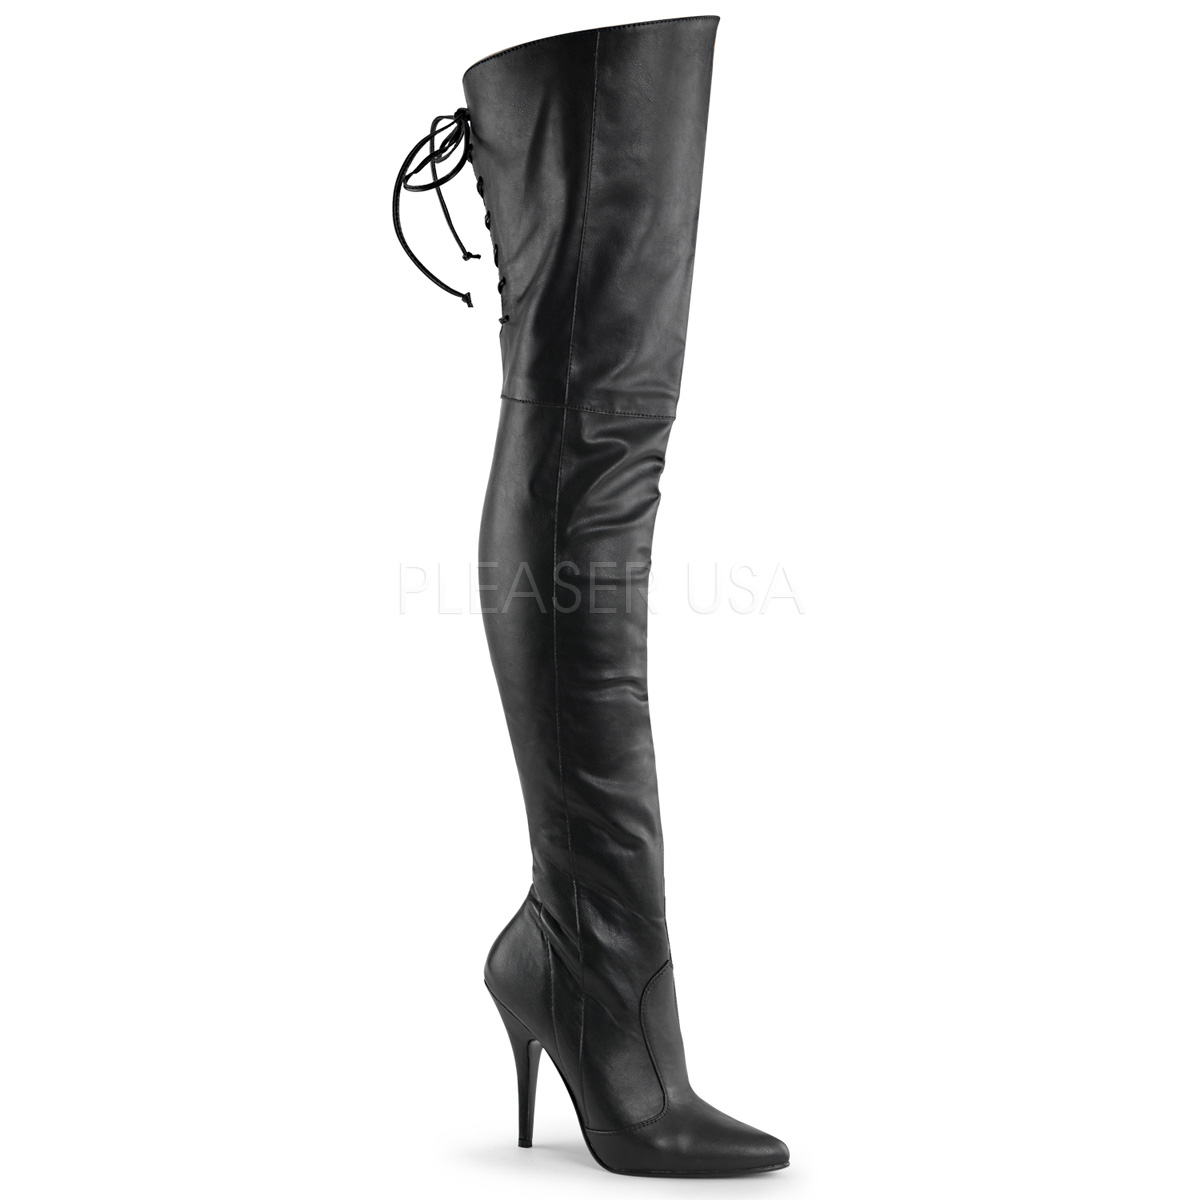 Pleaser Thigh High Boots igBT3Tgc